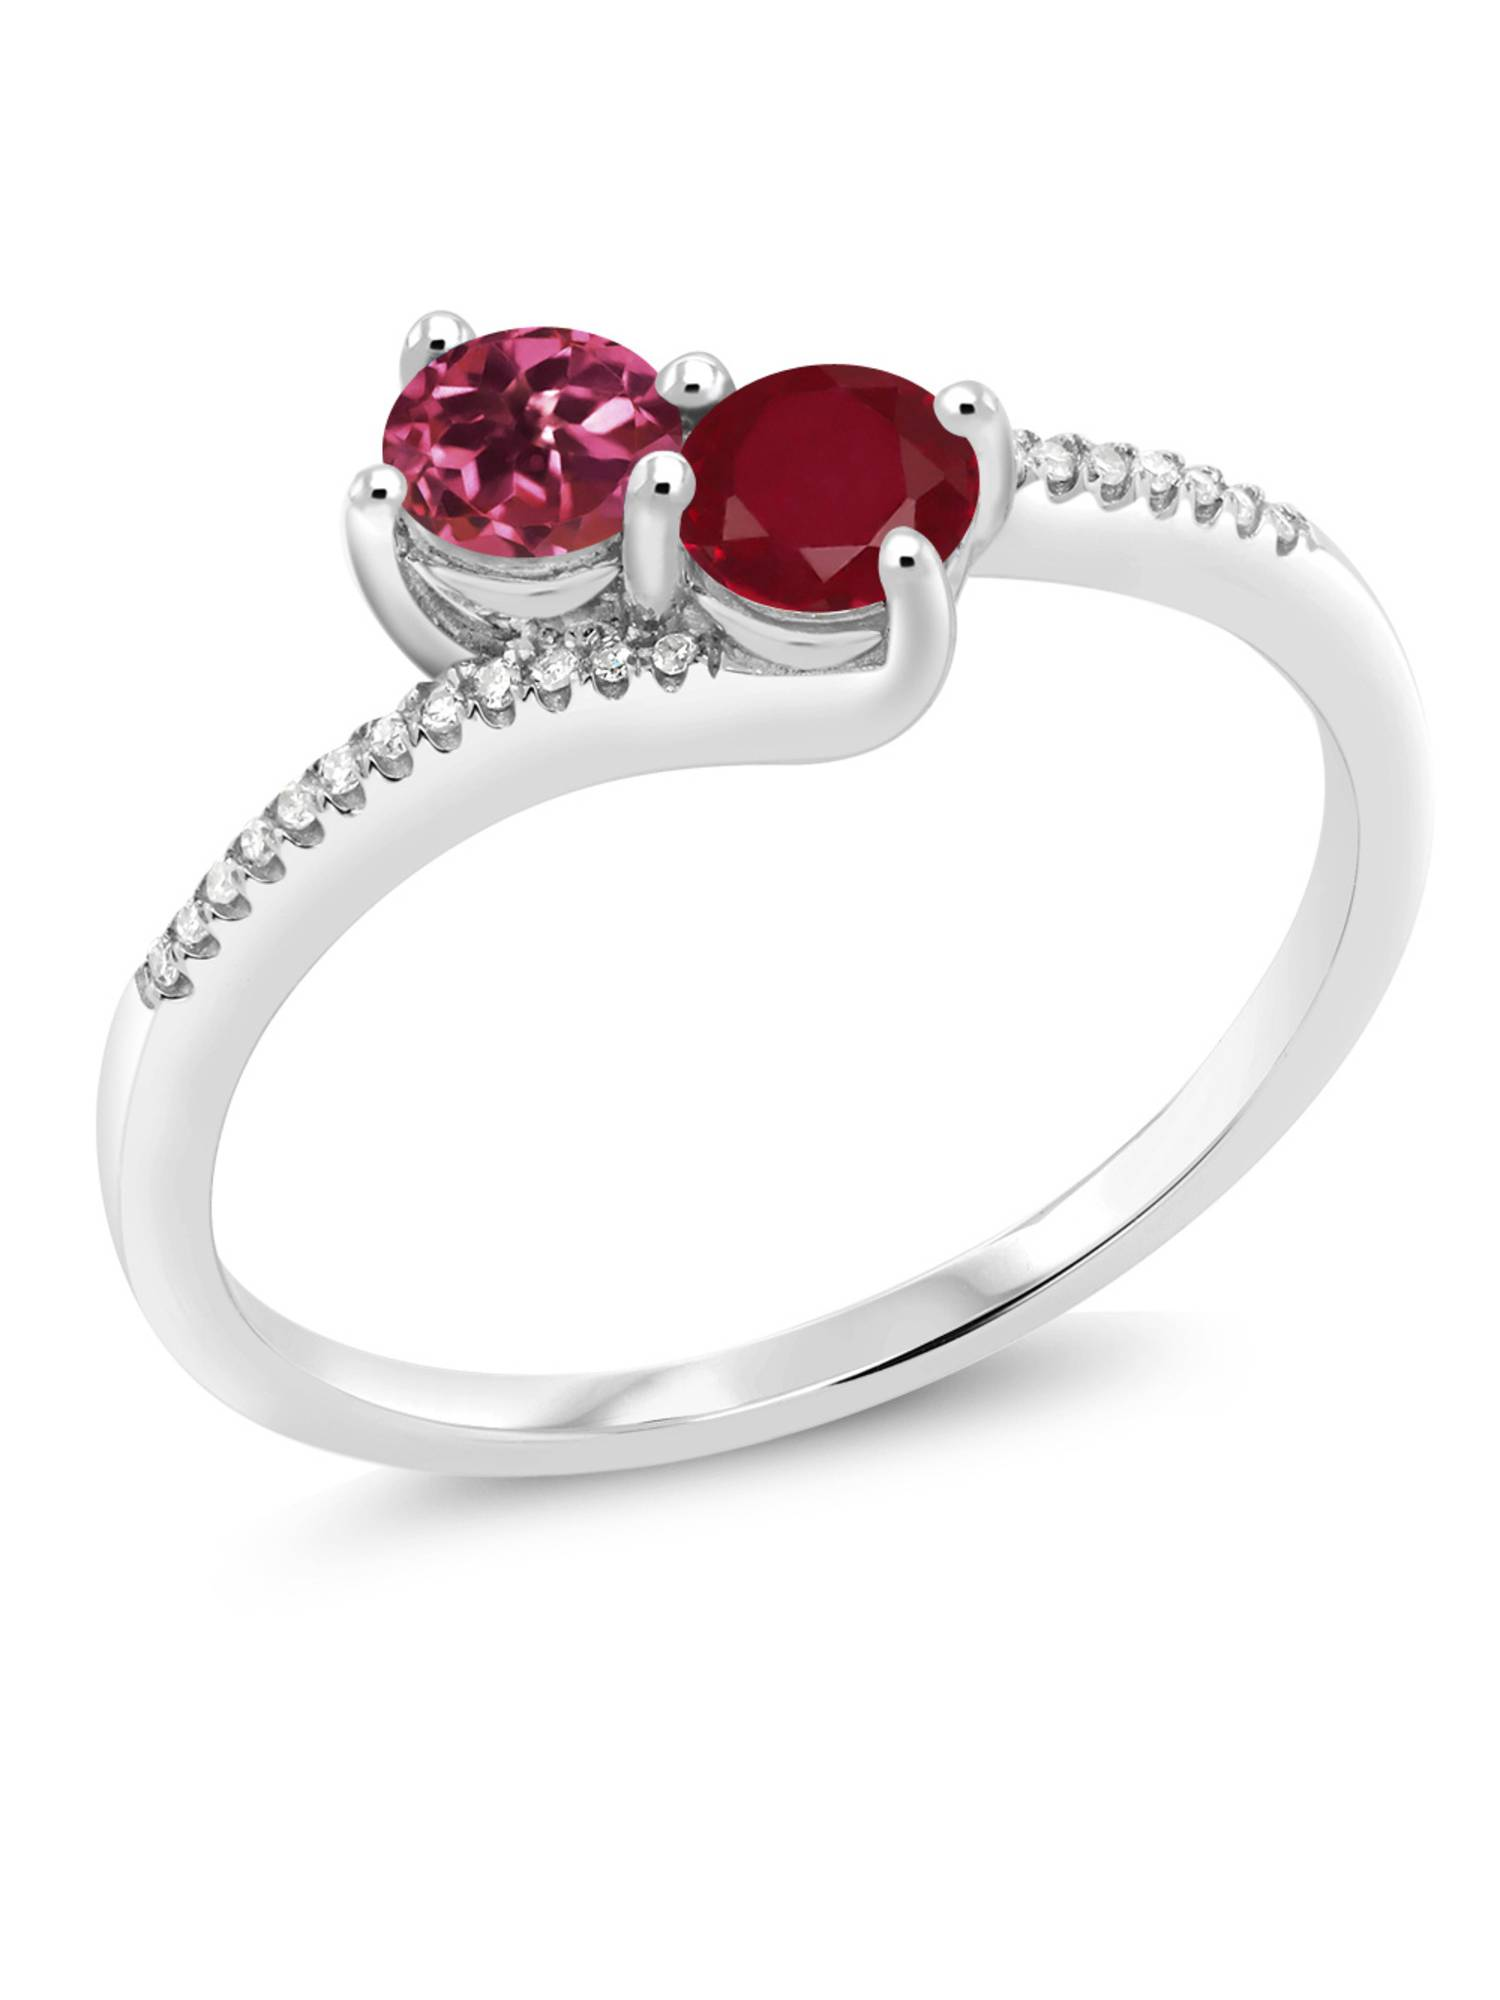 0.71 Ct Round Pink Tourmaline Red Ruby 10K White Gold Ring by